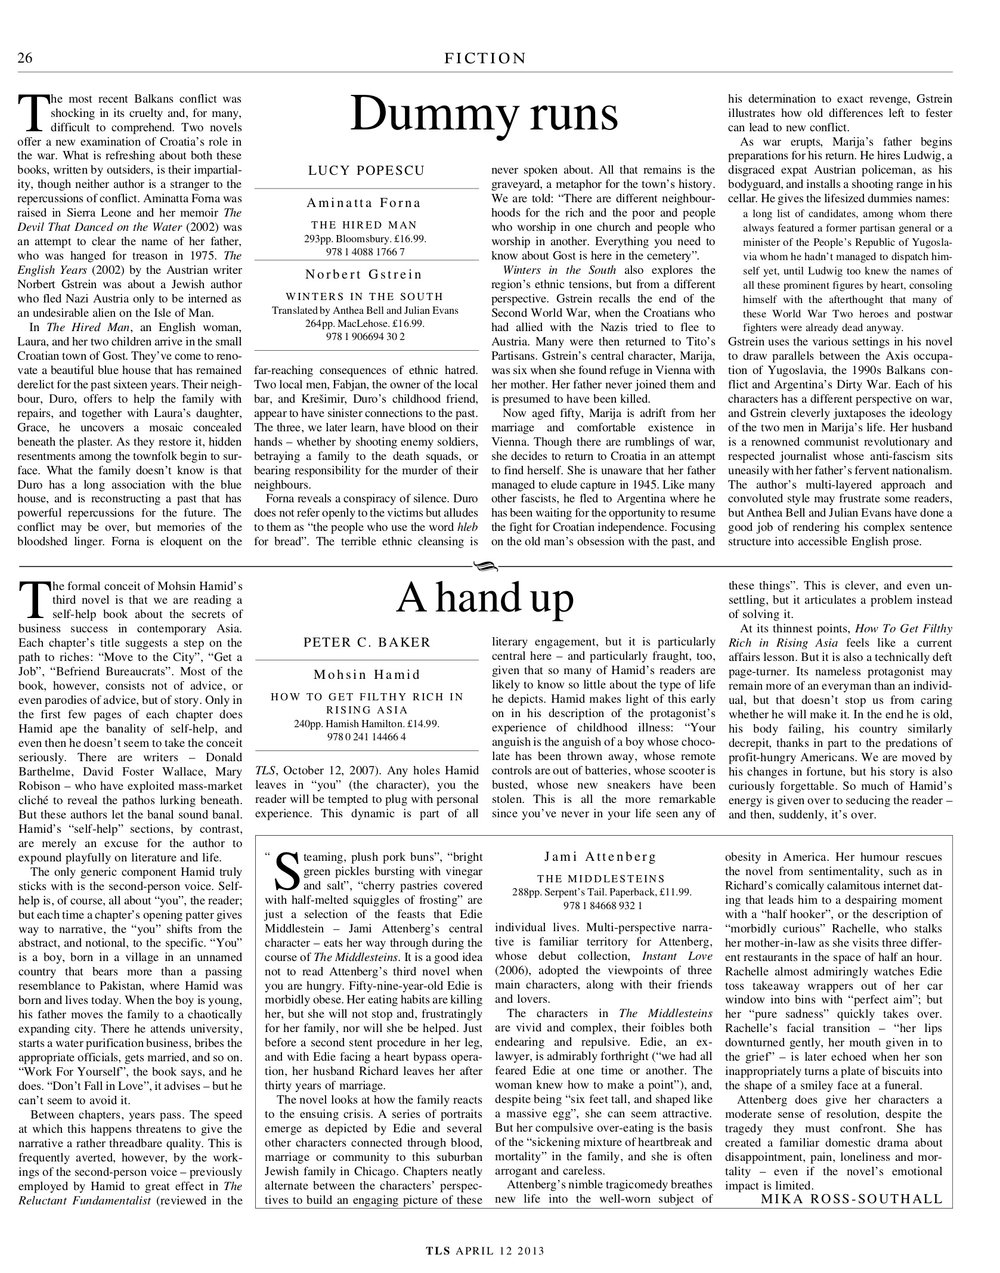 The Middlesteins, Jami Attenberg, Published in The Times Literary Supplement, April 12, 2013